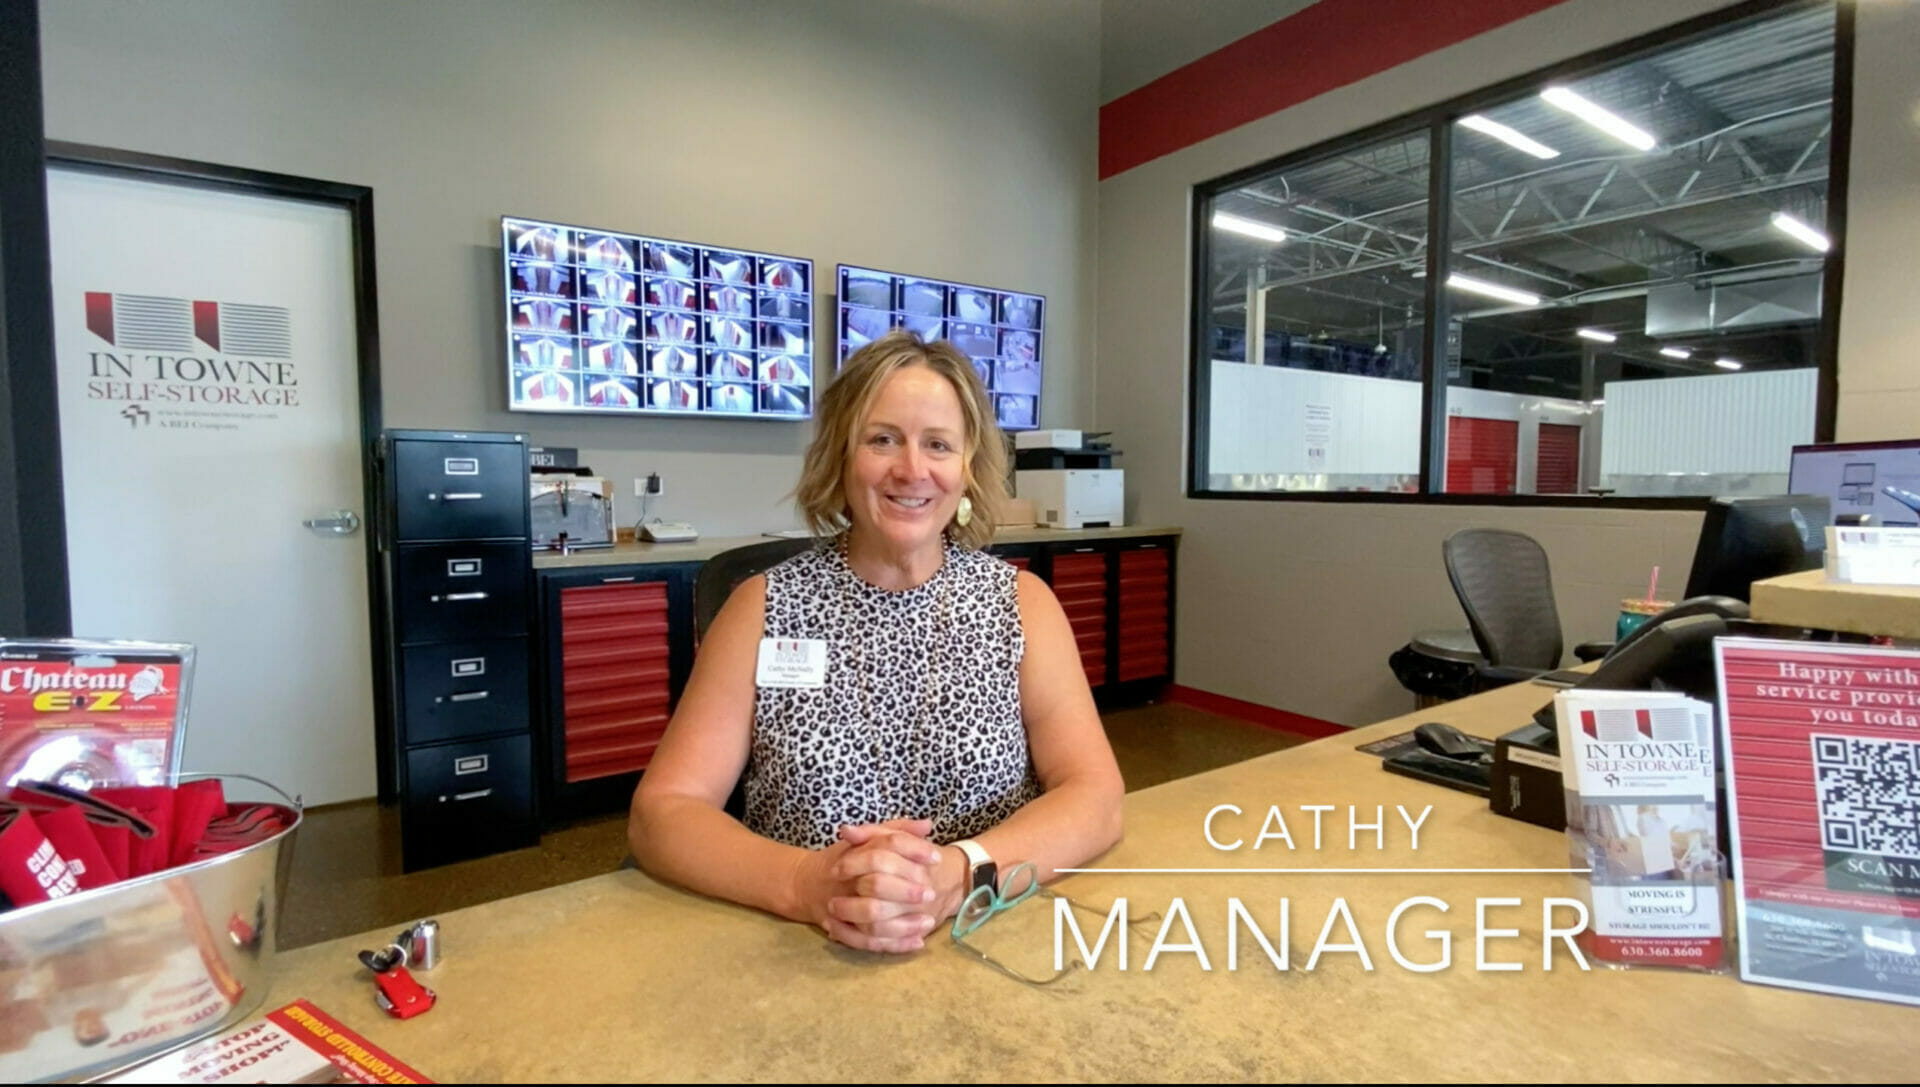 Cathy McNally - In Towne Self Storage